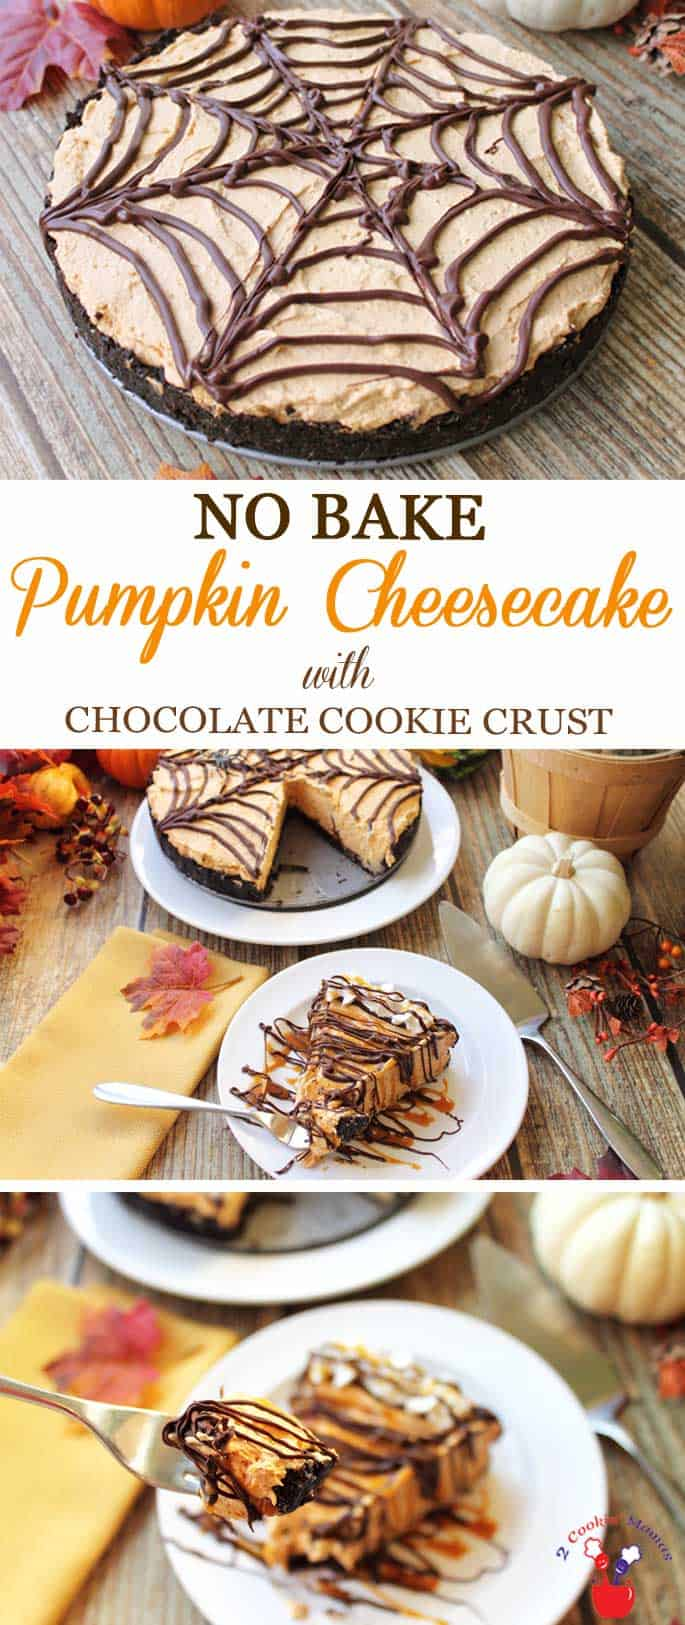 No Bake Pumpkin Cheesecake | 2 Cookin Mamas Our No Bake Pumpkin Cheesecake is light & fluffy with a delicious spiced pumpkin cheesecake filling on a chocolate cookie crust. Drizzle it with caramel & chocolate for an irresistible dessert! #dessert #cheesecake #recipe